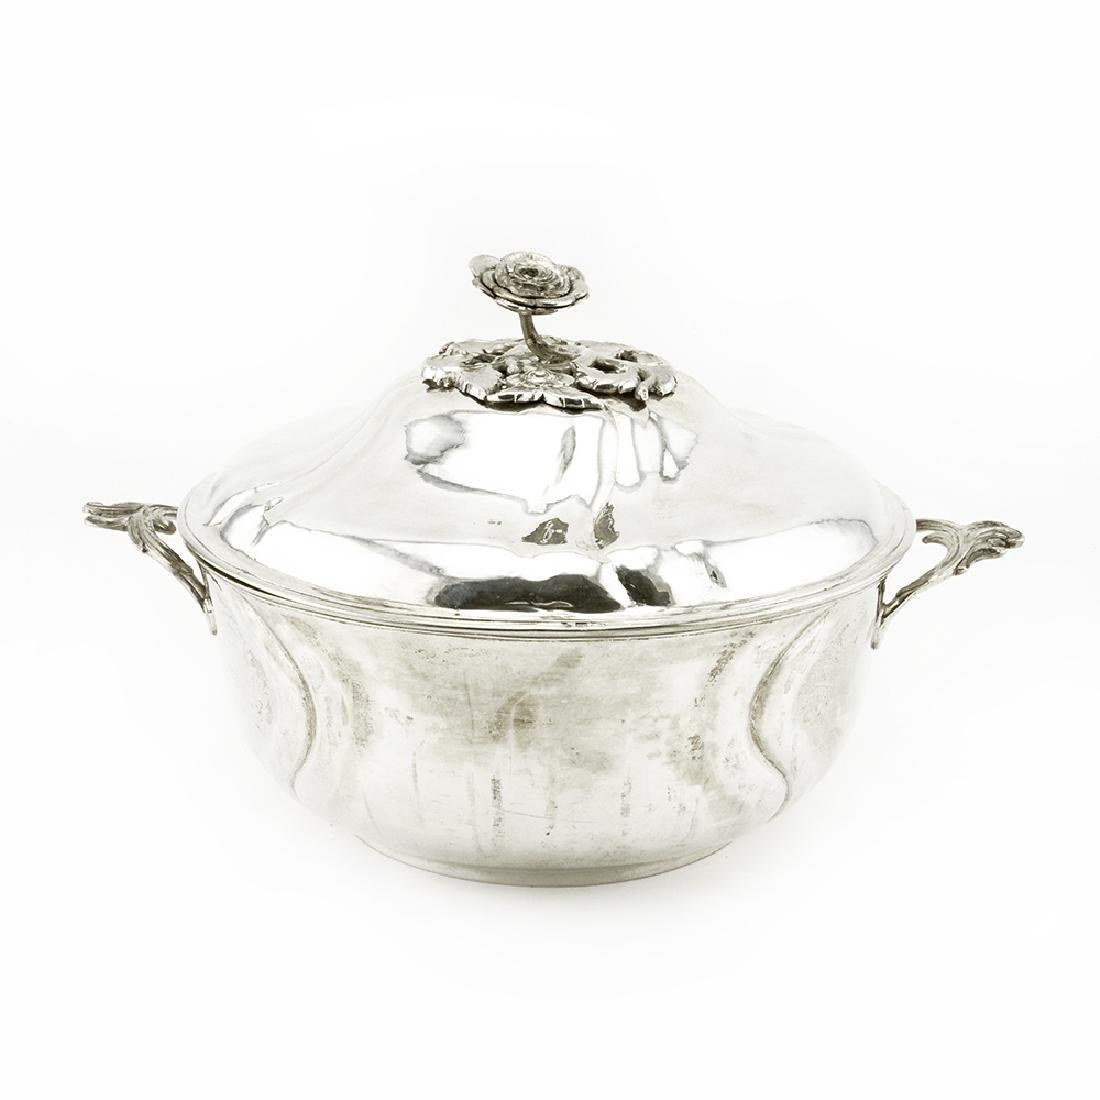 Russian 1775 silver covered tureen